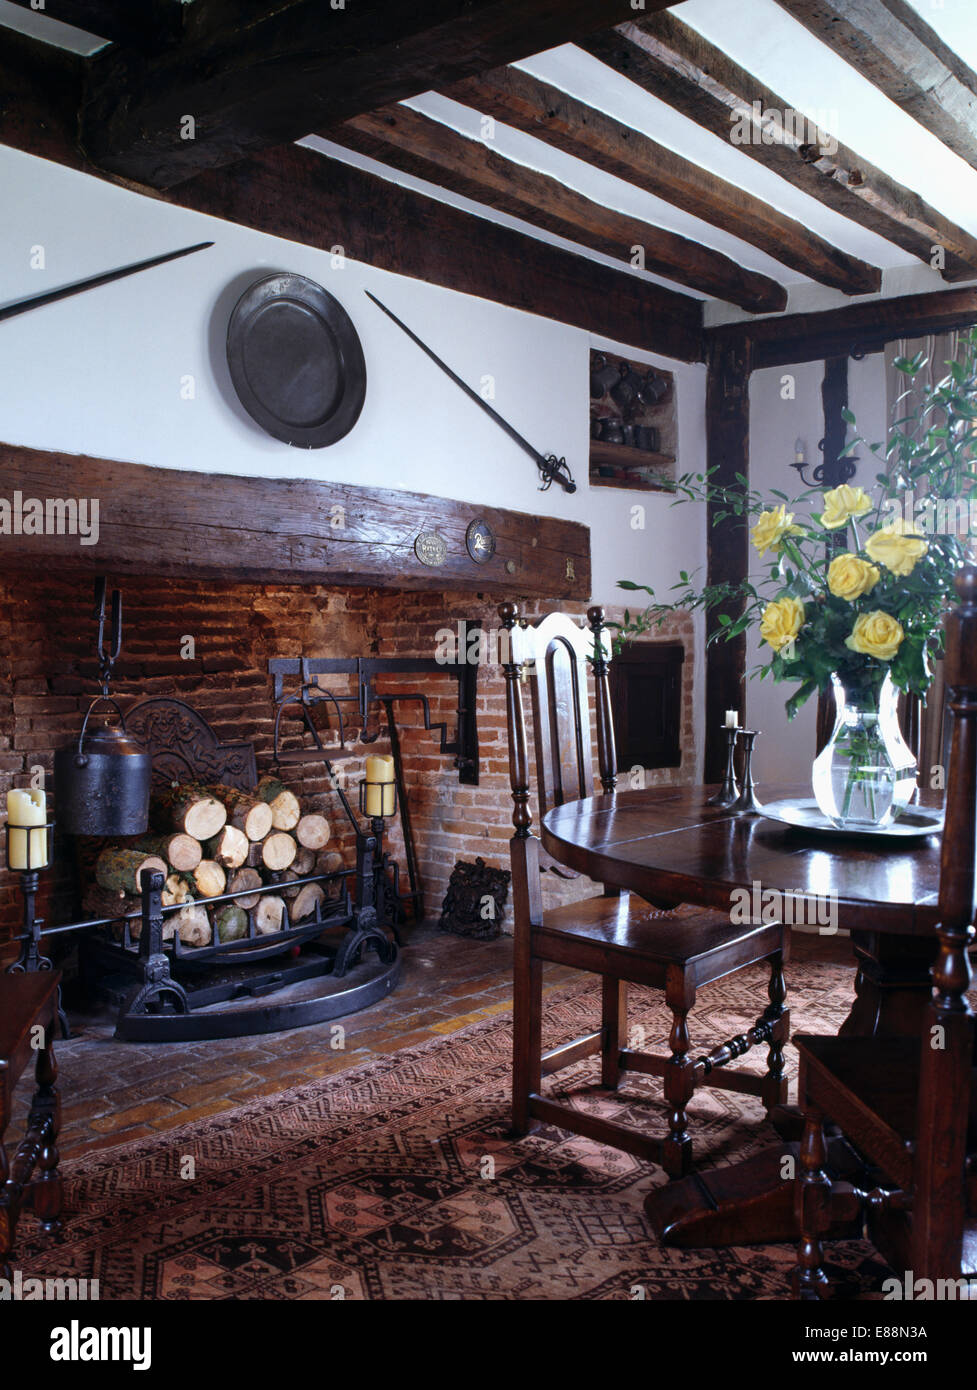 Polished Oak Reproduction Chairs And Table In Country Dining Room With Tudor Inglenook Fireplace